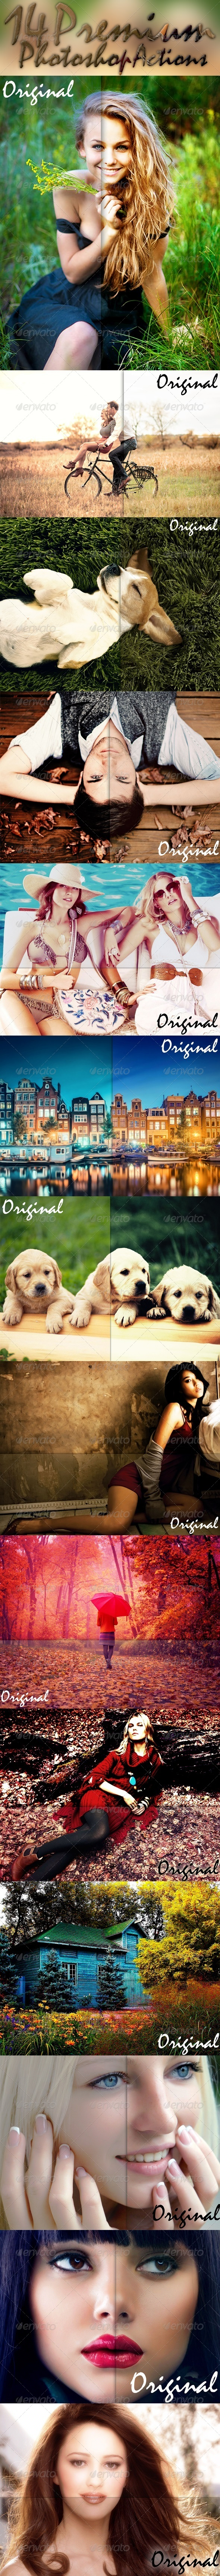 GraphicRiver 14 Premium Photoshop Actions 7451109